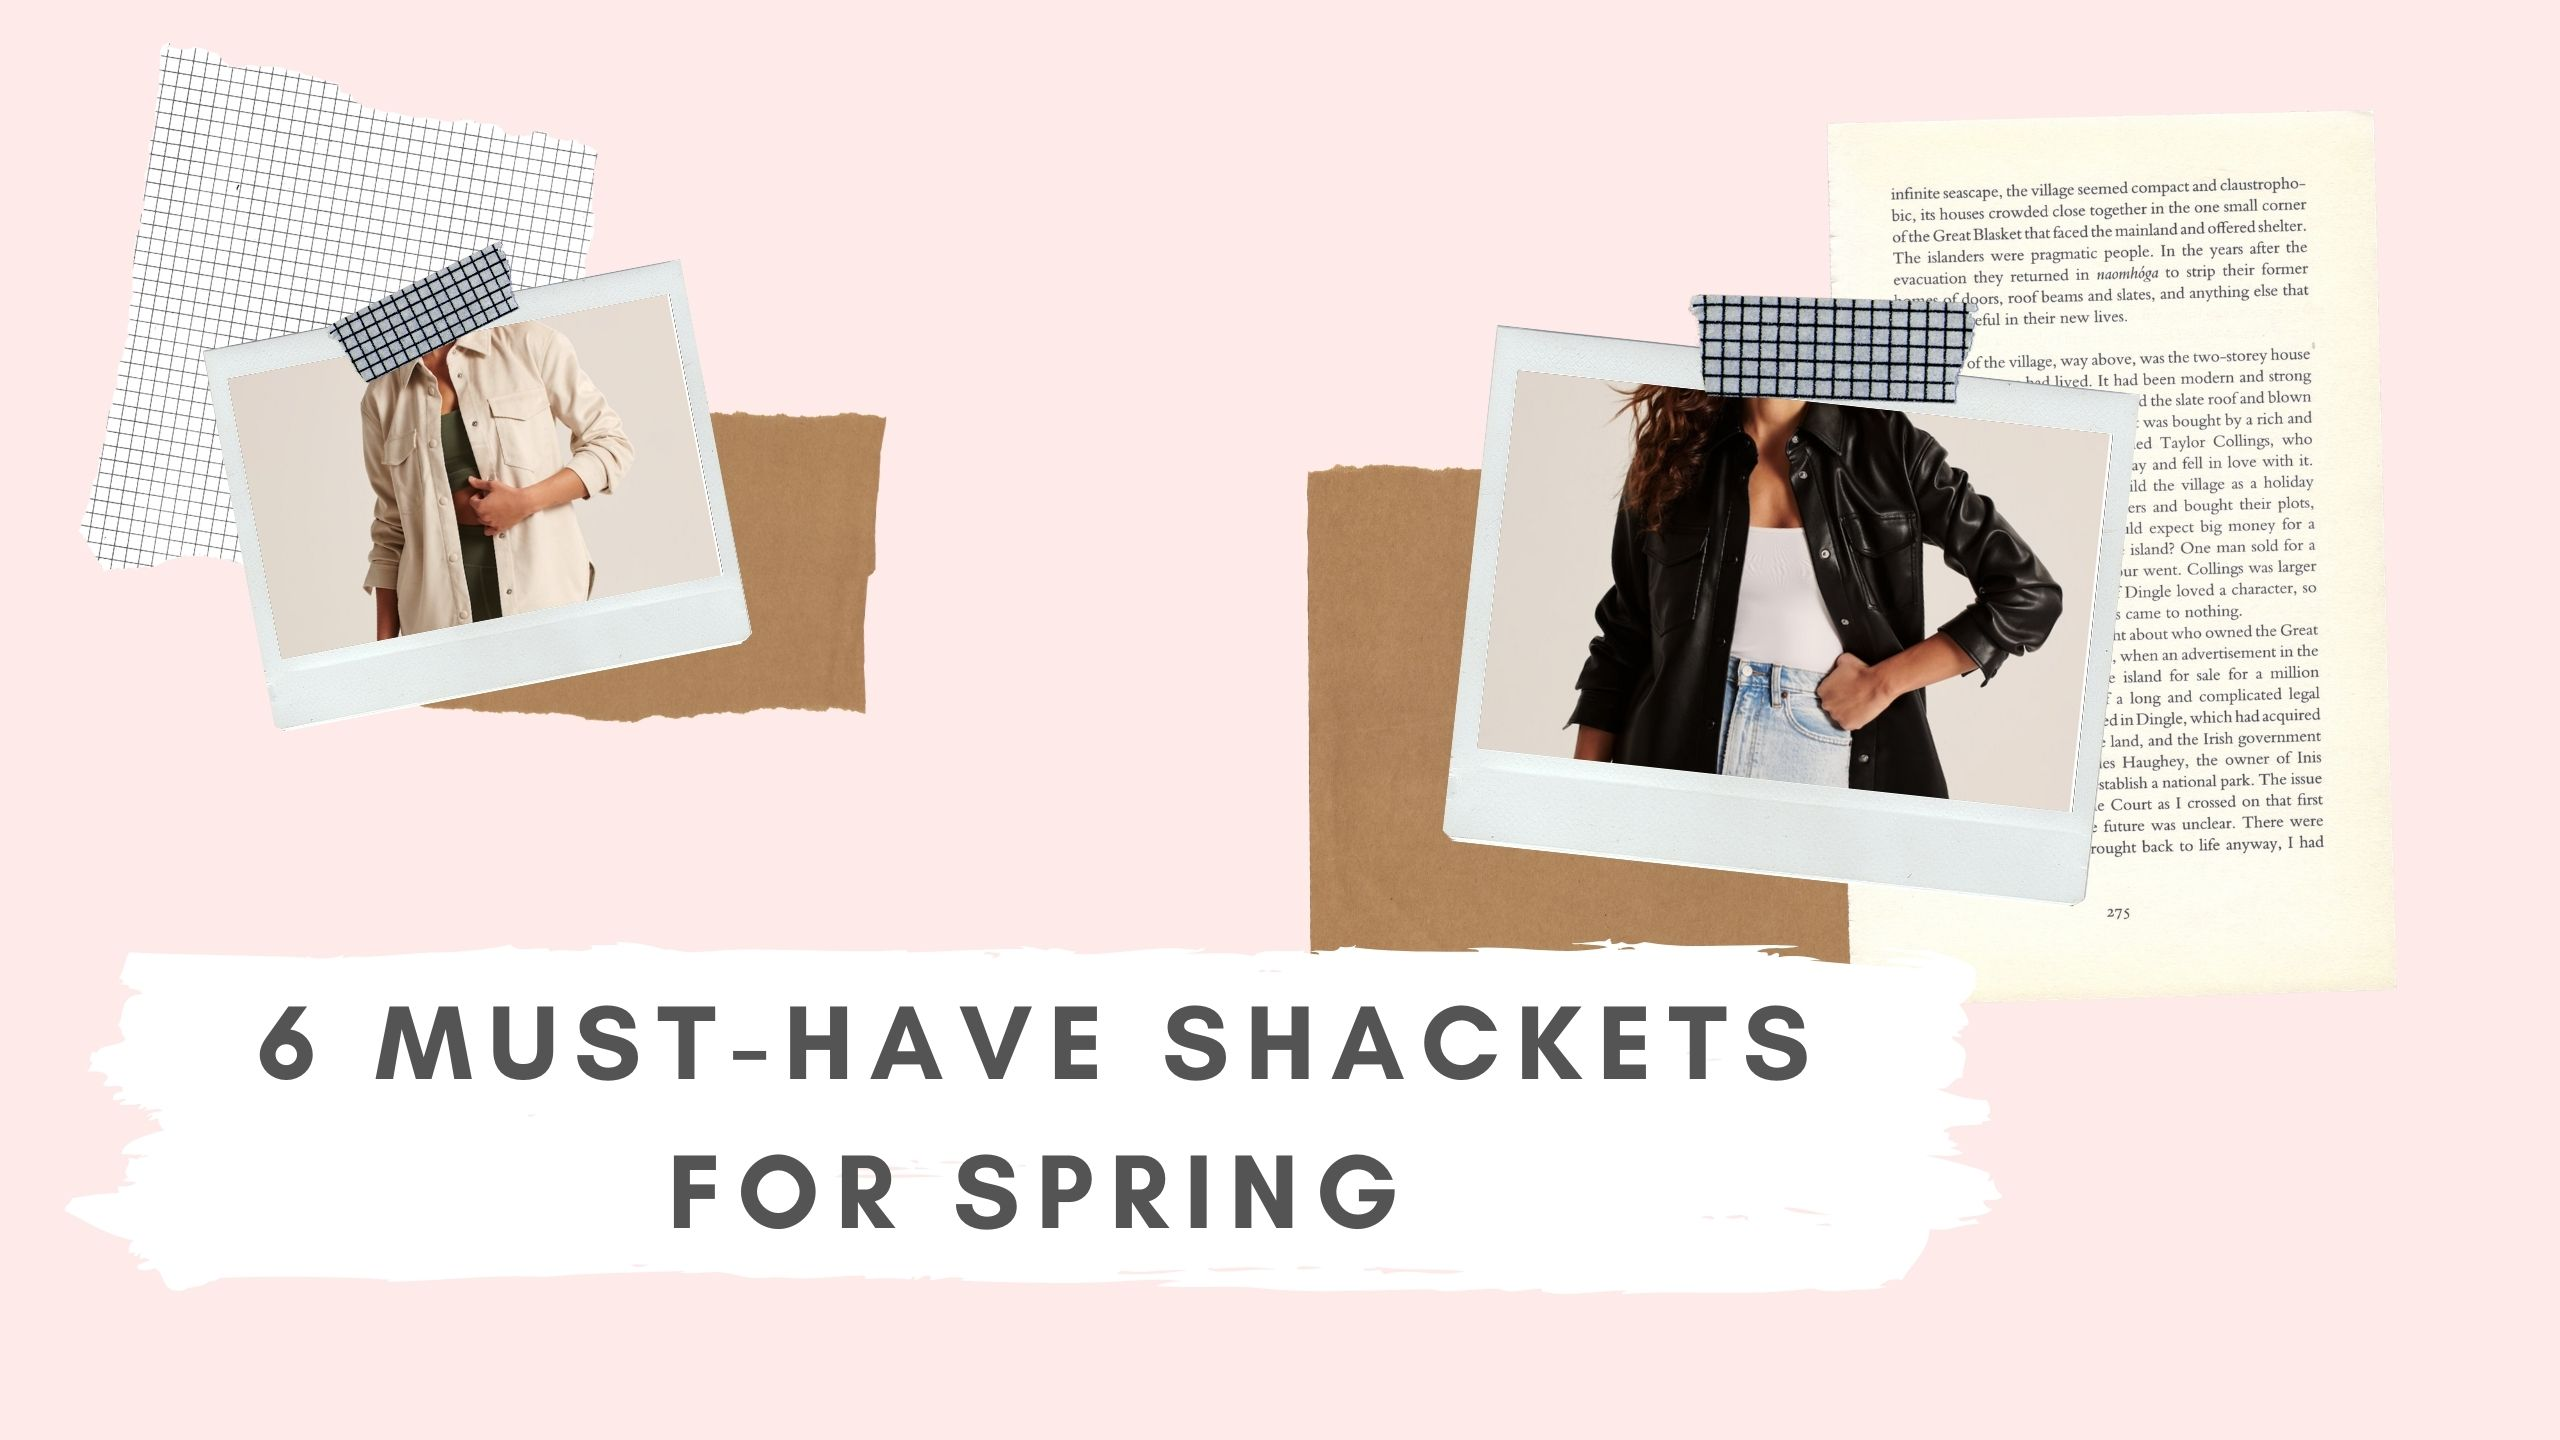 6 Must-Have Shackets for Spring 6 - K for Katrina